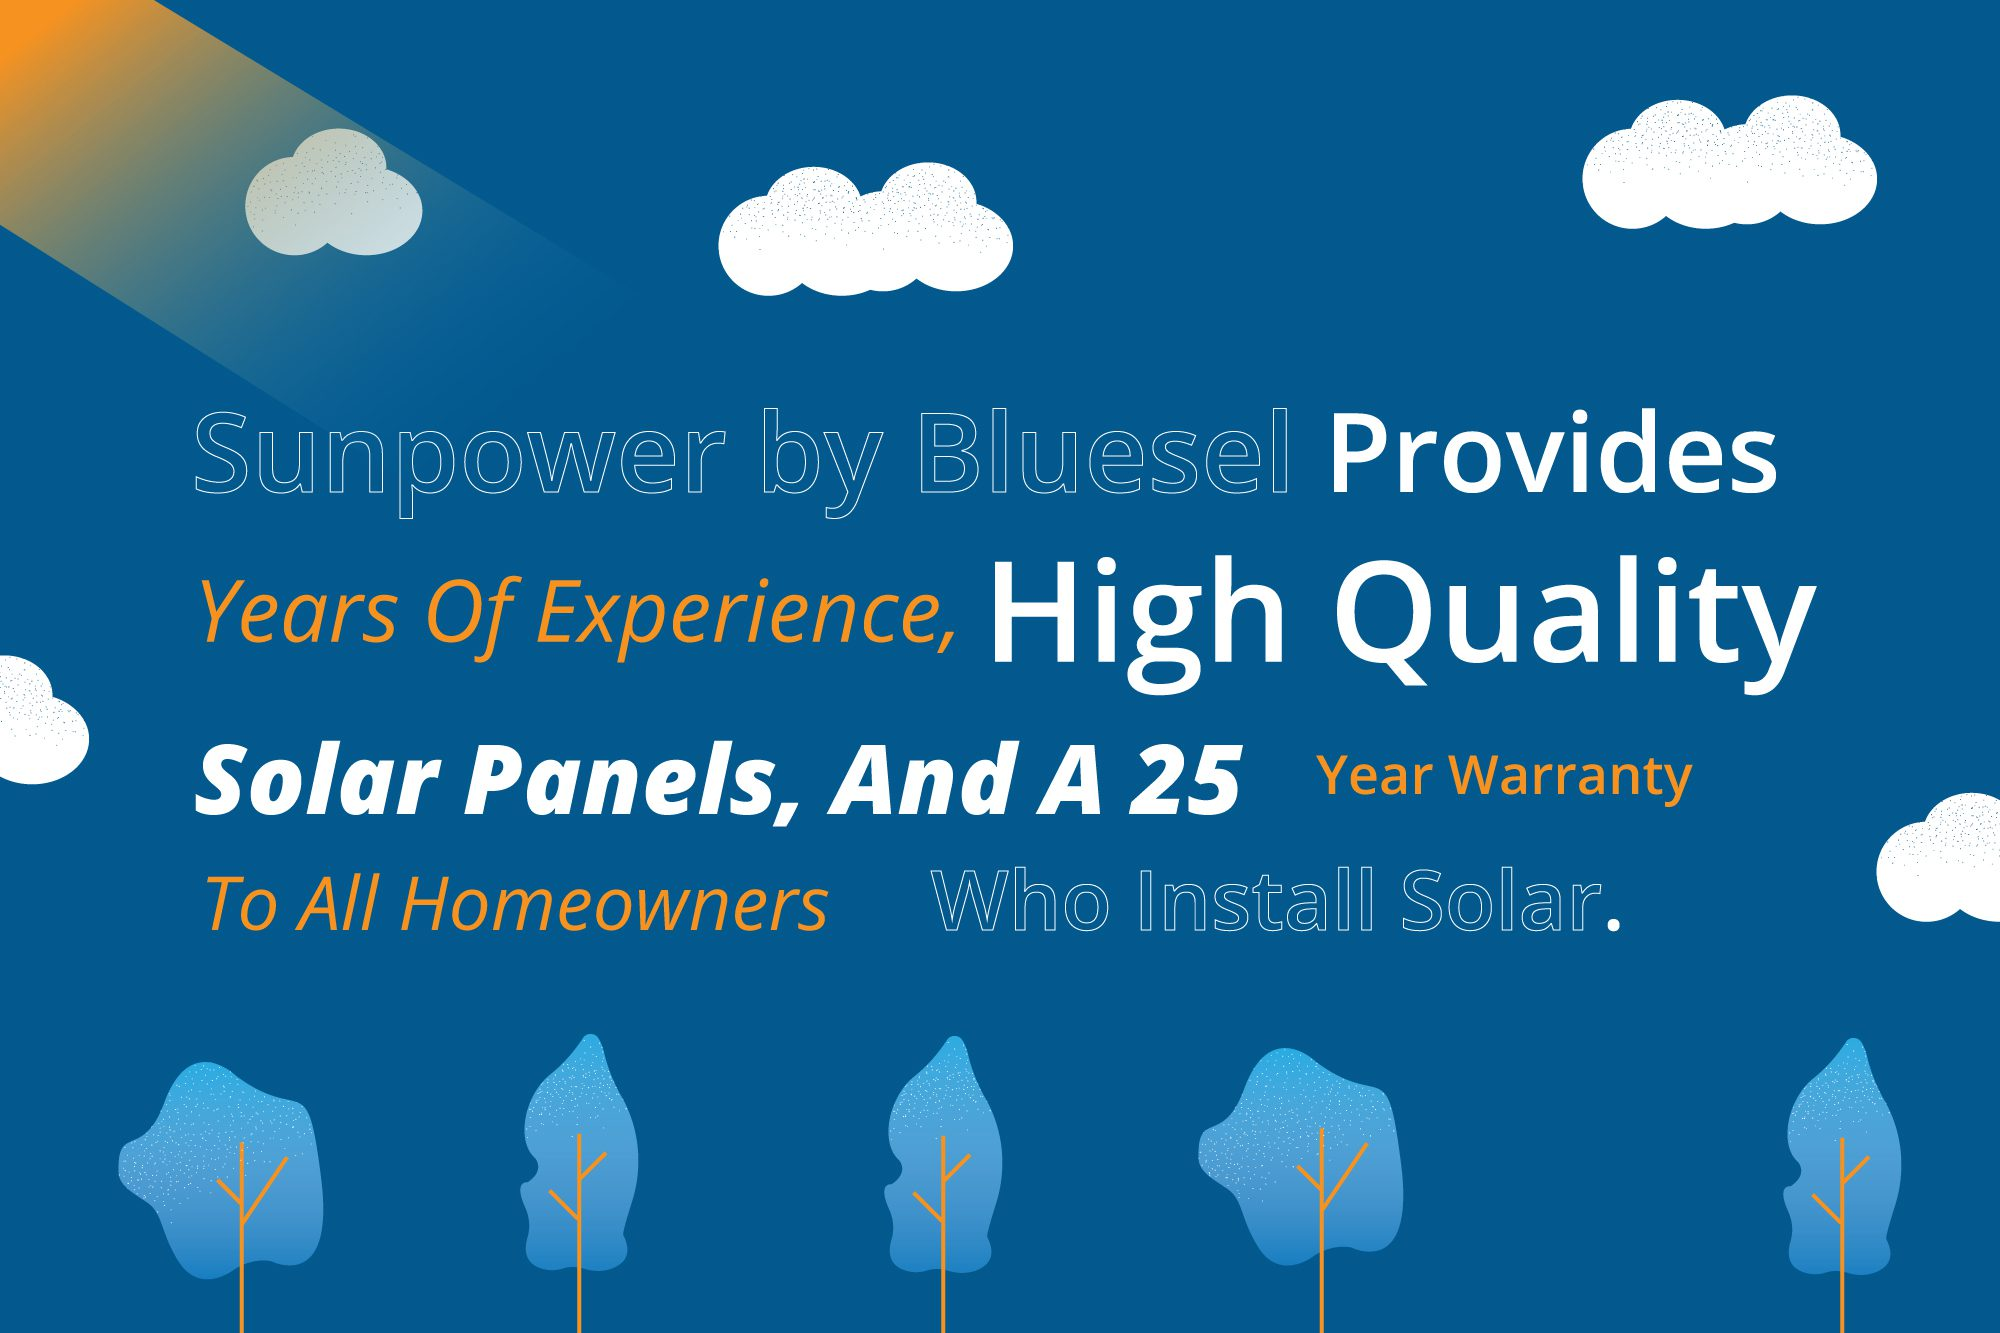 Sunpower by Blusel provides high quality panels